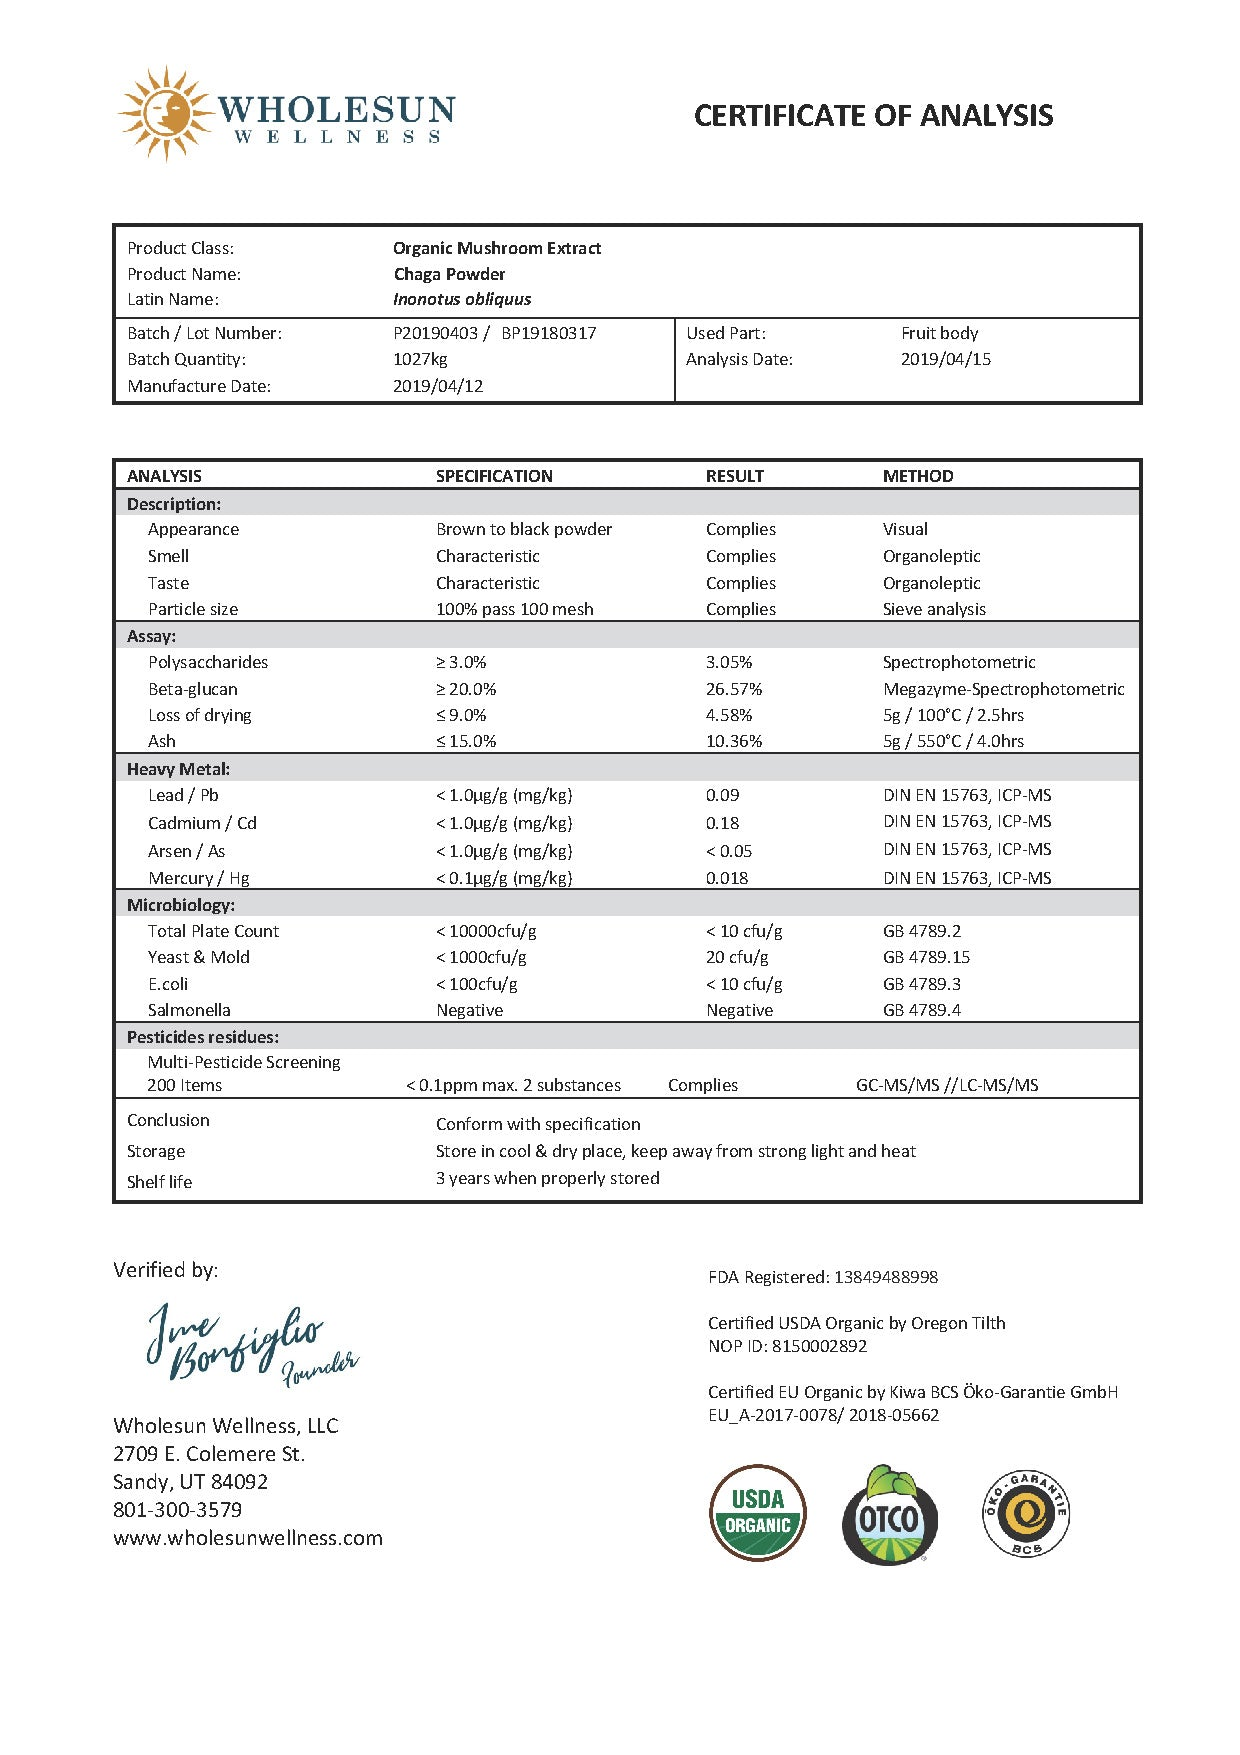 Chaga Mushroom Extract Powder Certificate of Analysis